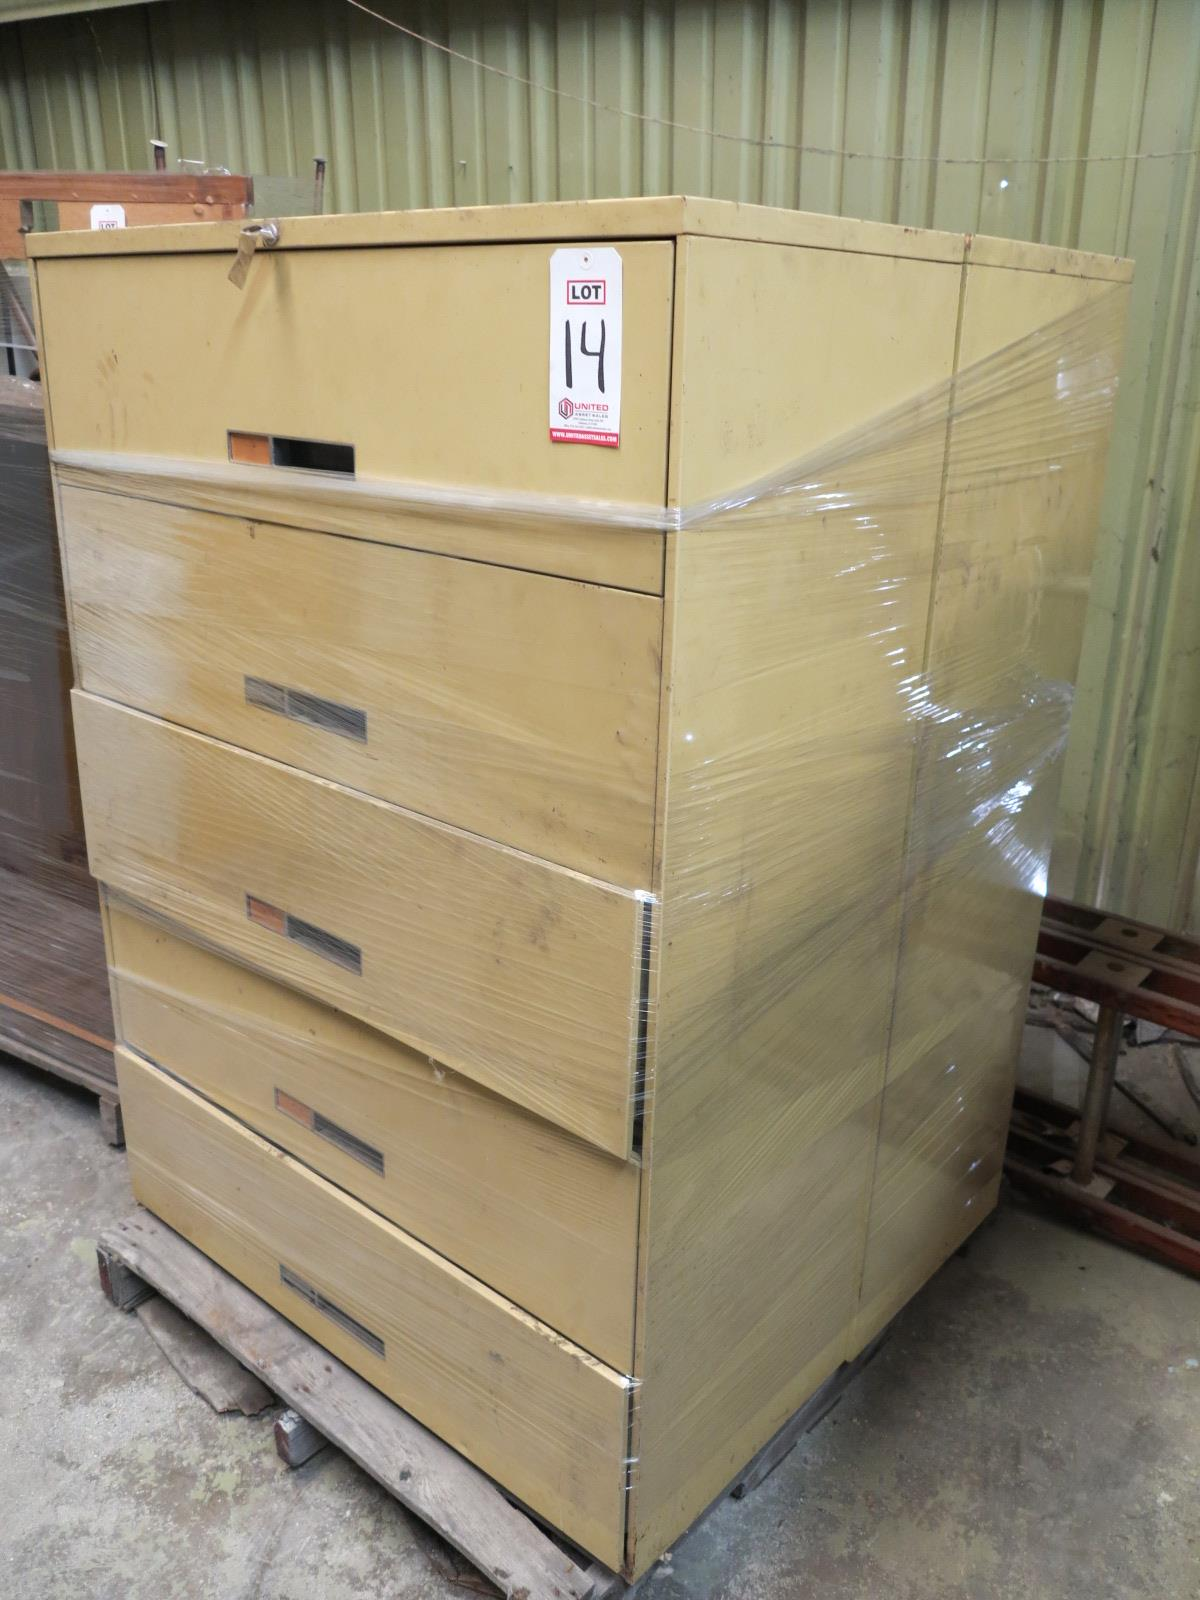 Lot 14 - LOT - PALLET W/ (2) FILE CABINETS